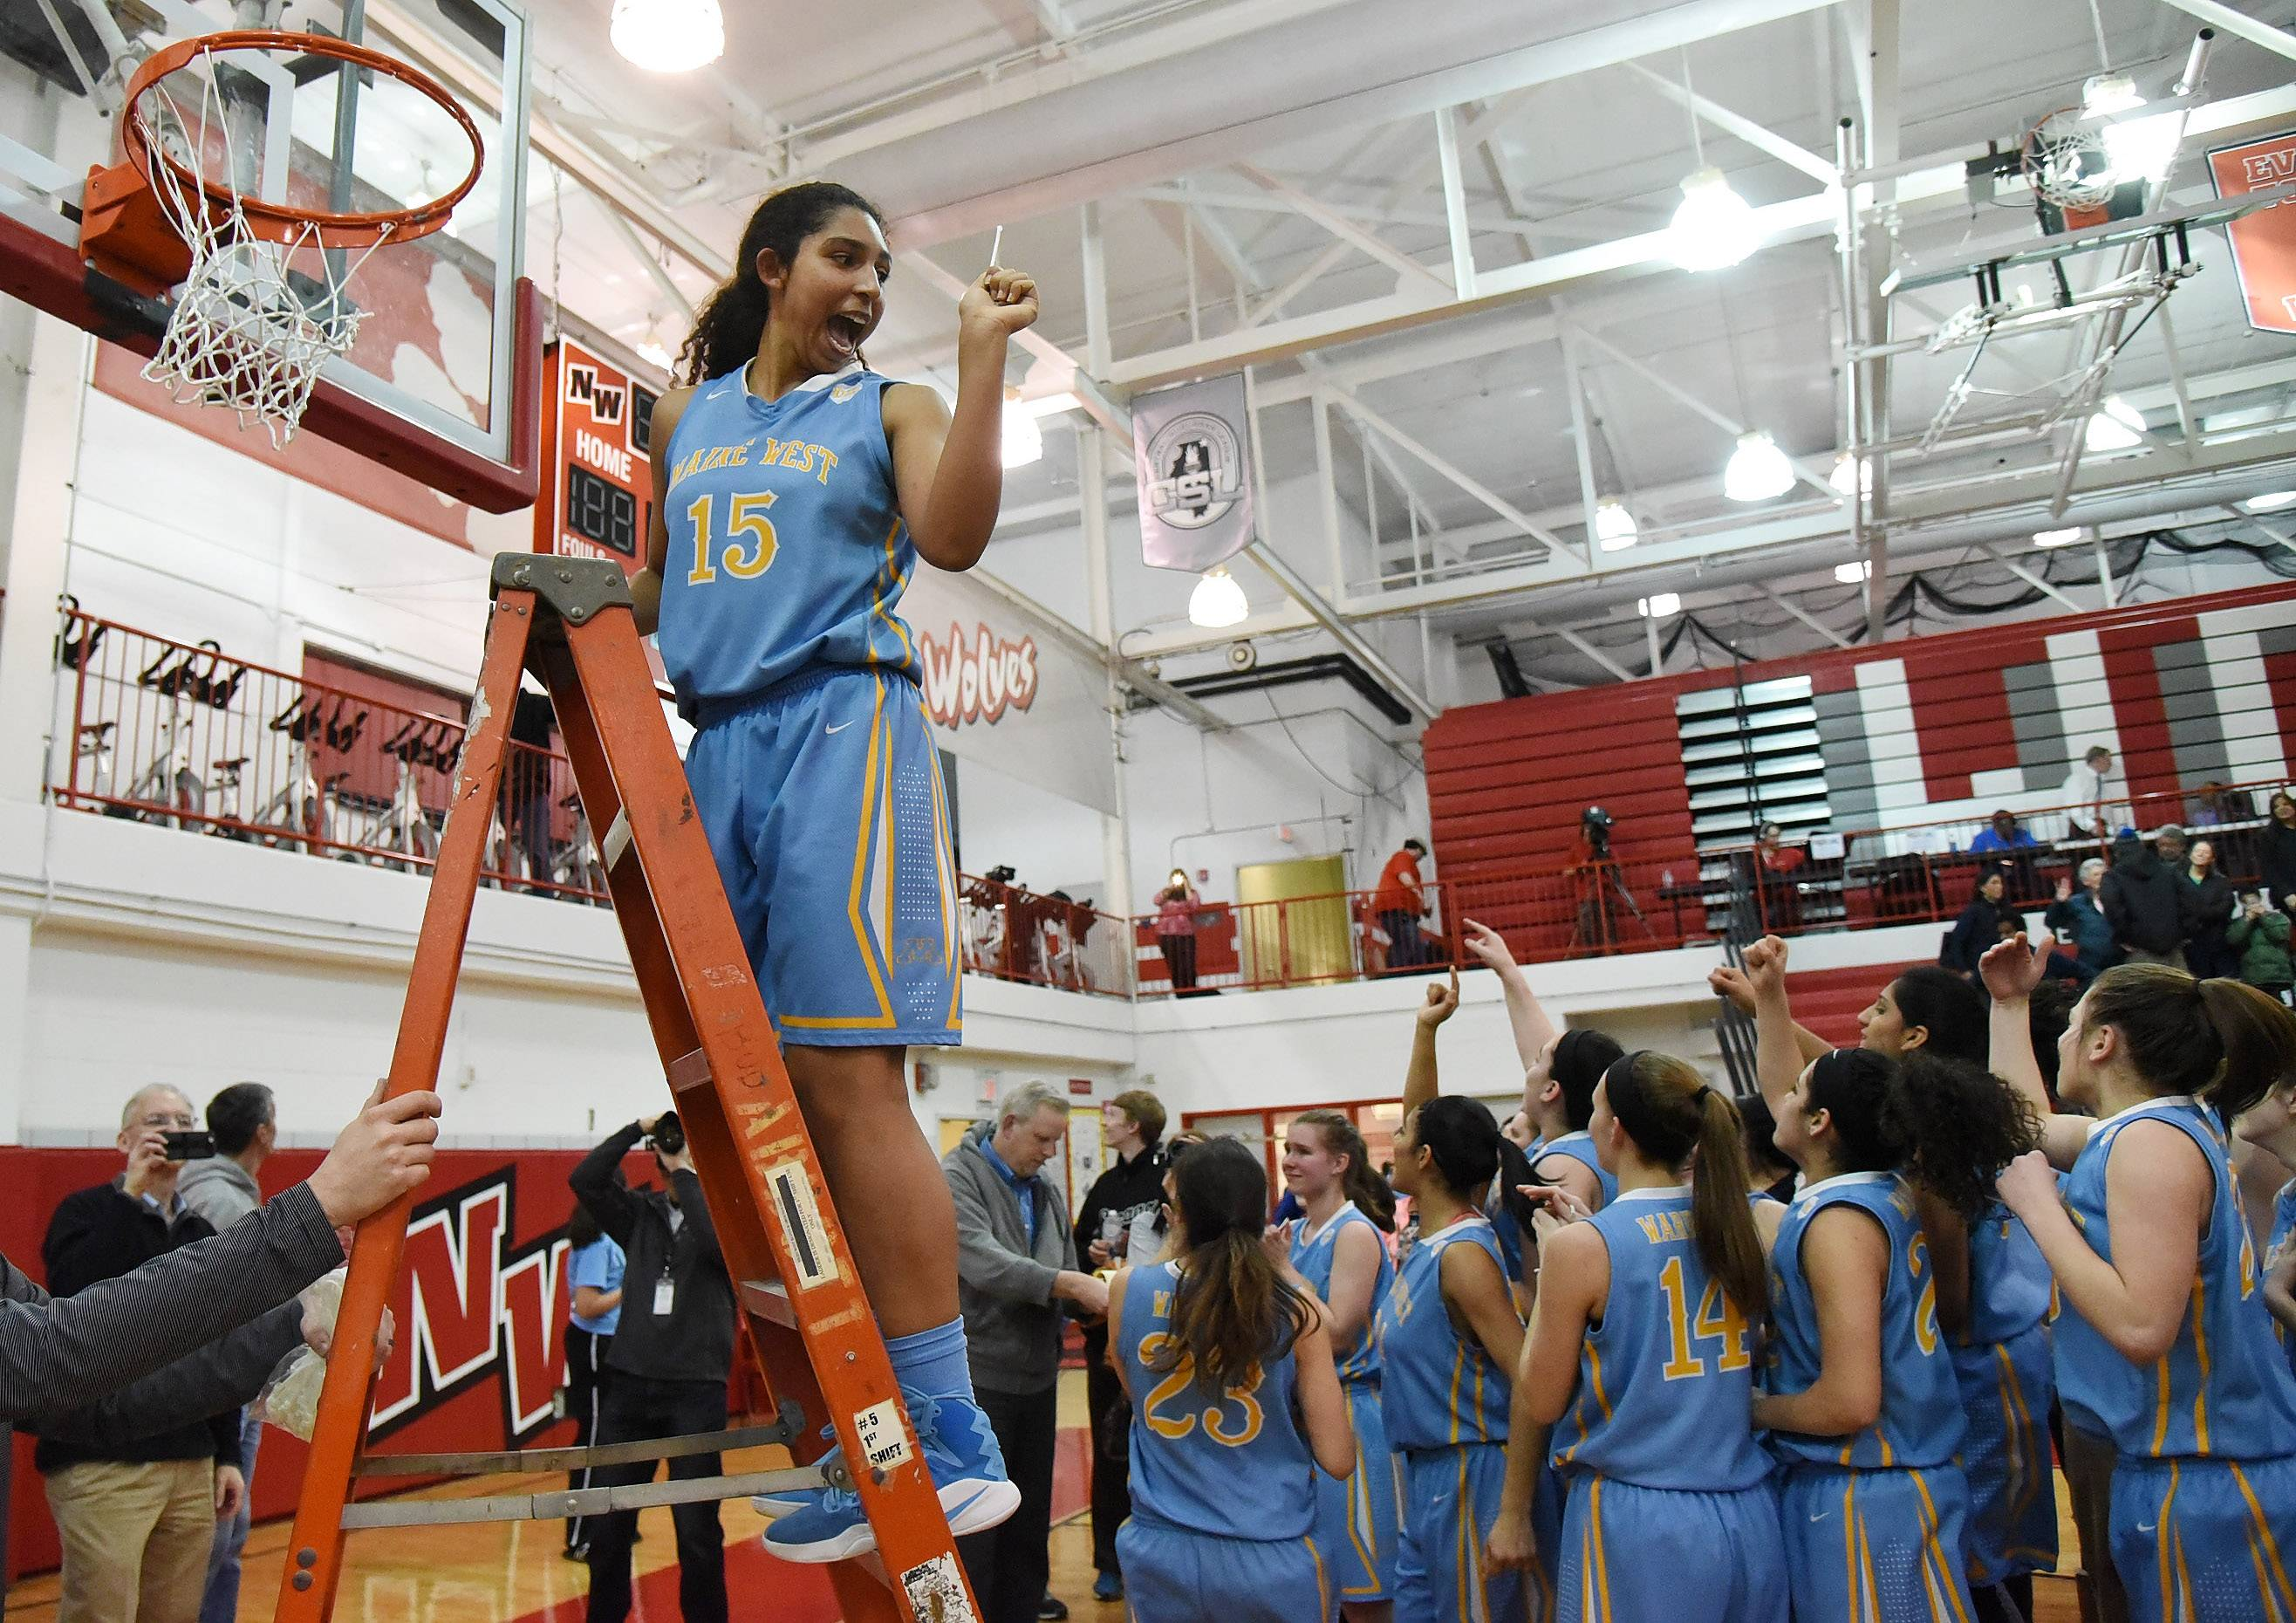 Rachel Kent cuts down a piece of the net after Maine West's victory over  Evanston in the Class 4A sectional final at Niles West on Thursday.